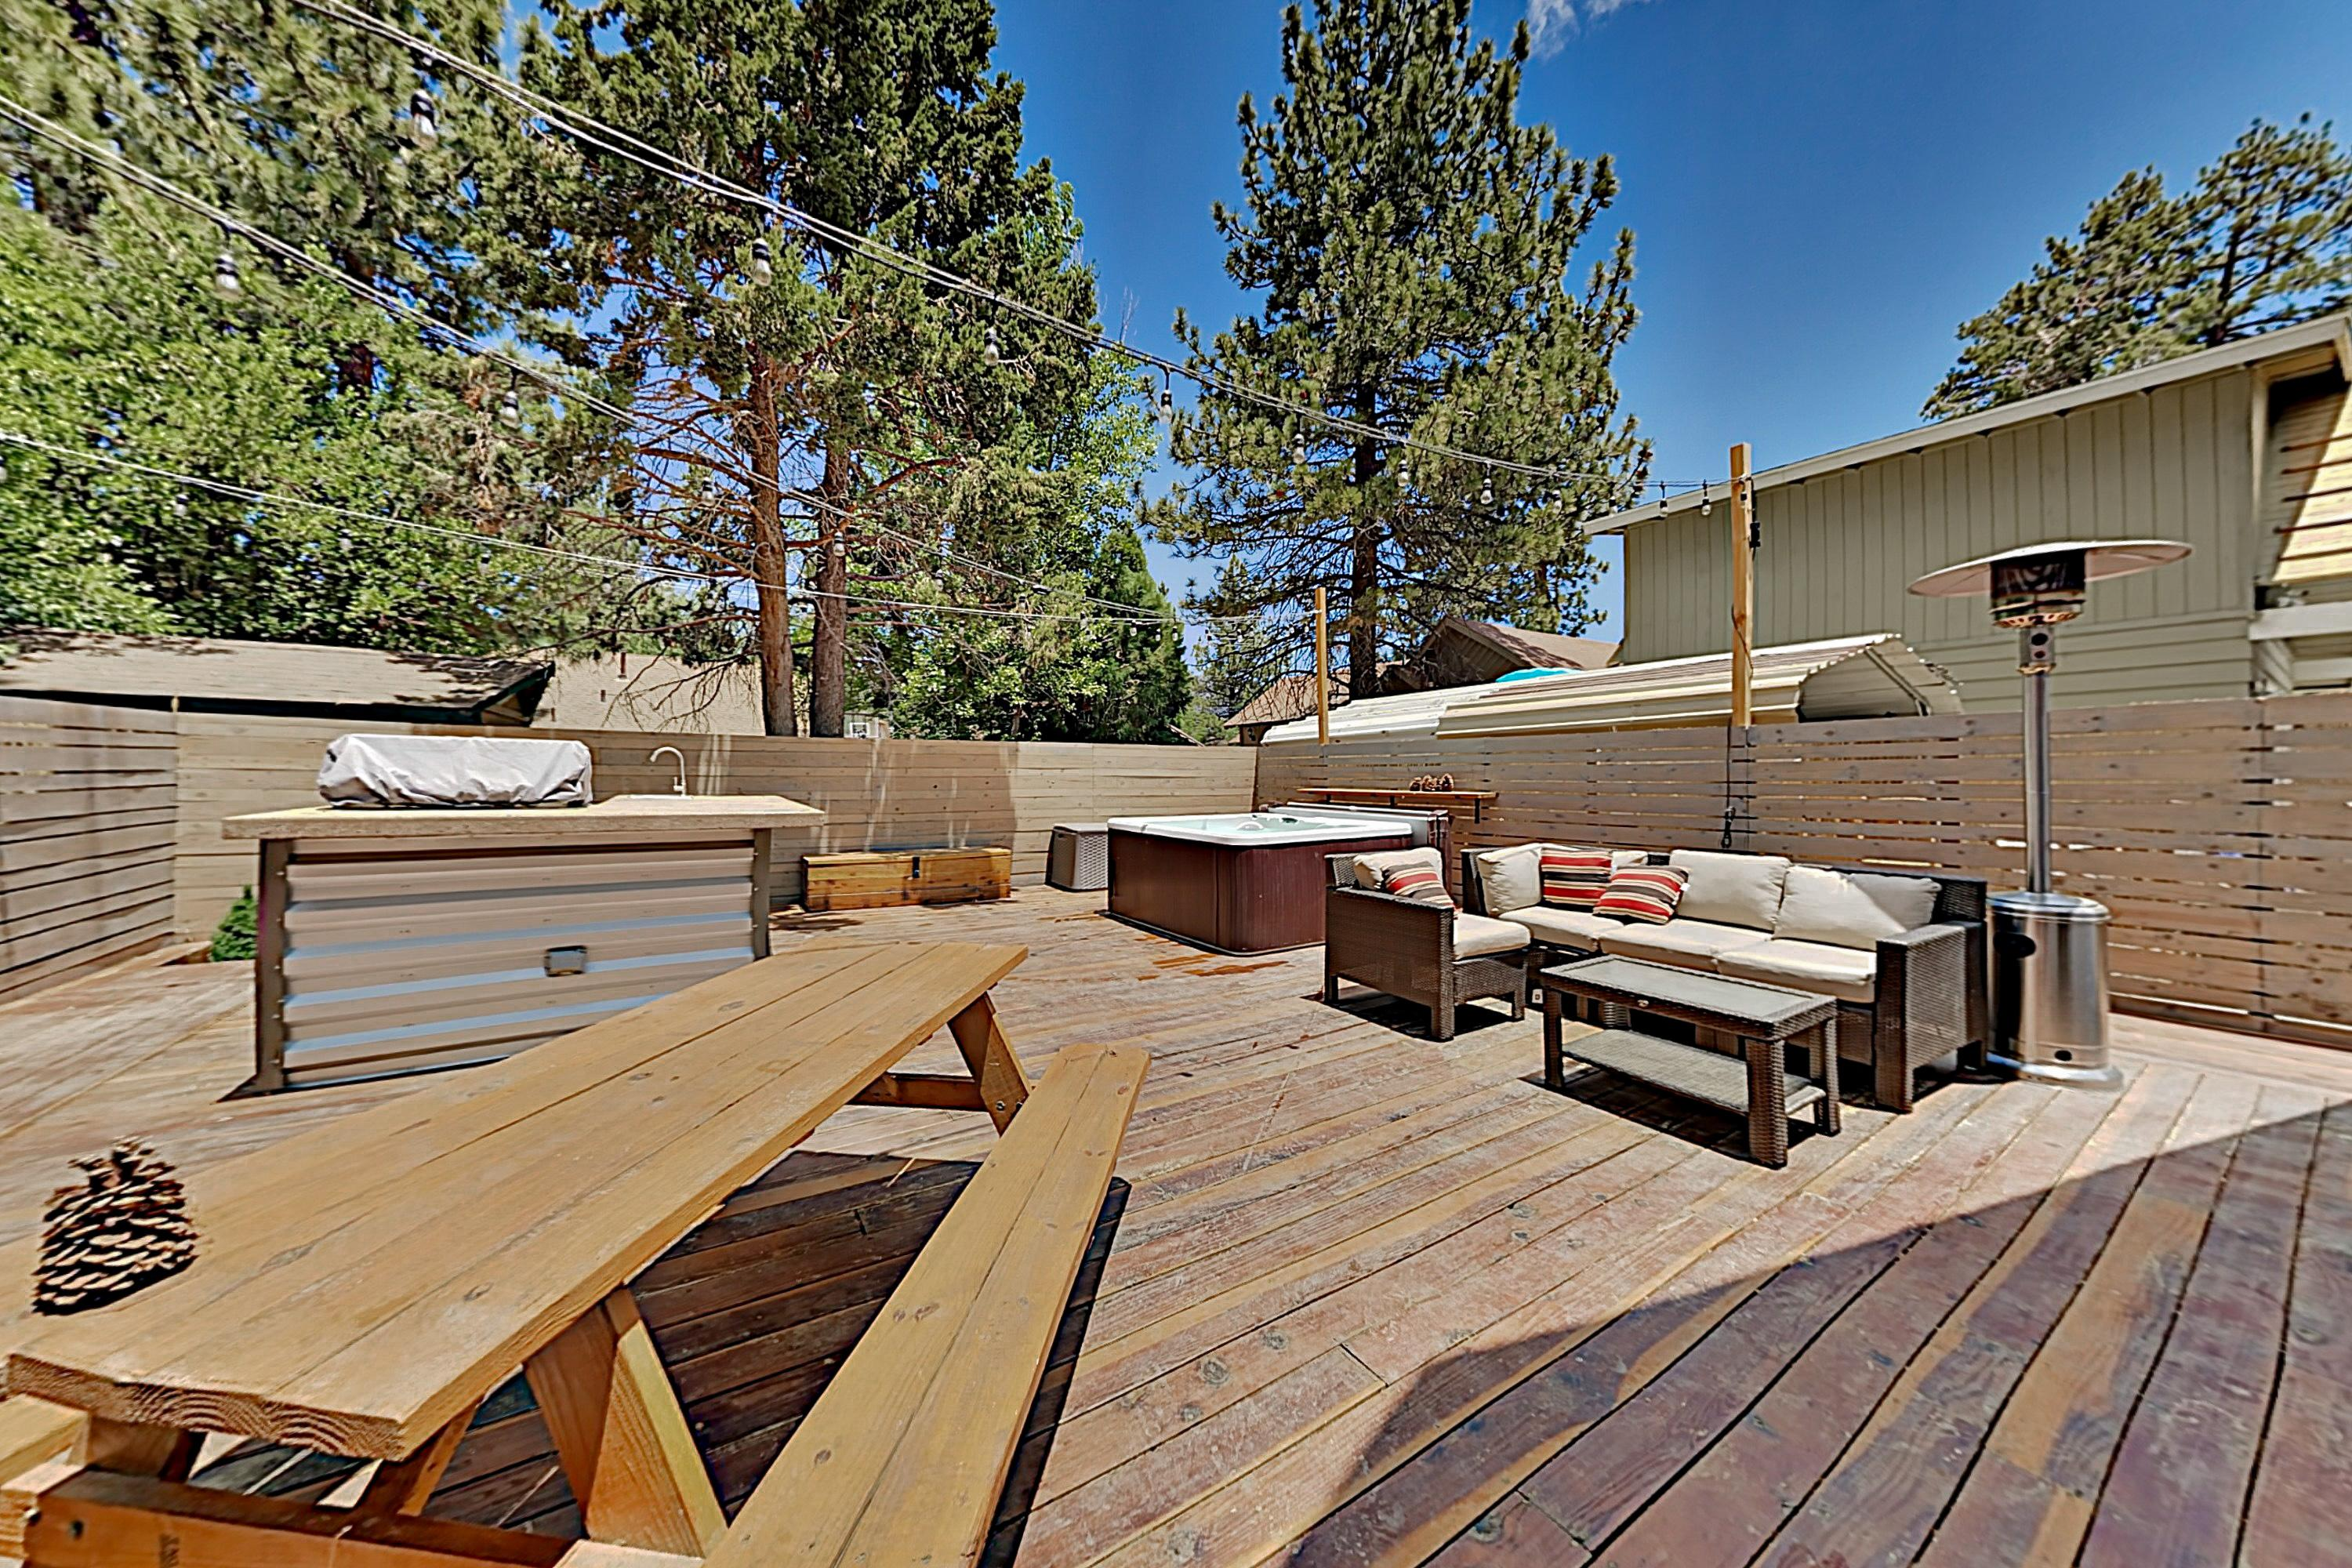 Property Image 2 - Chic Cabin with Spacious Deck, Outdoor Kitchen & Hot Tub